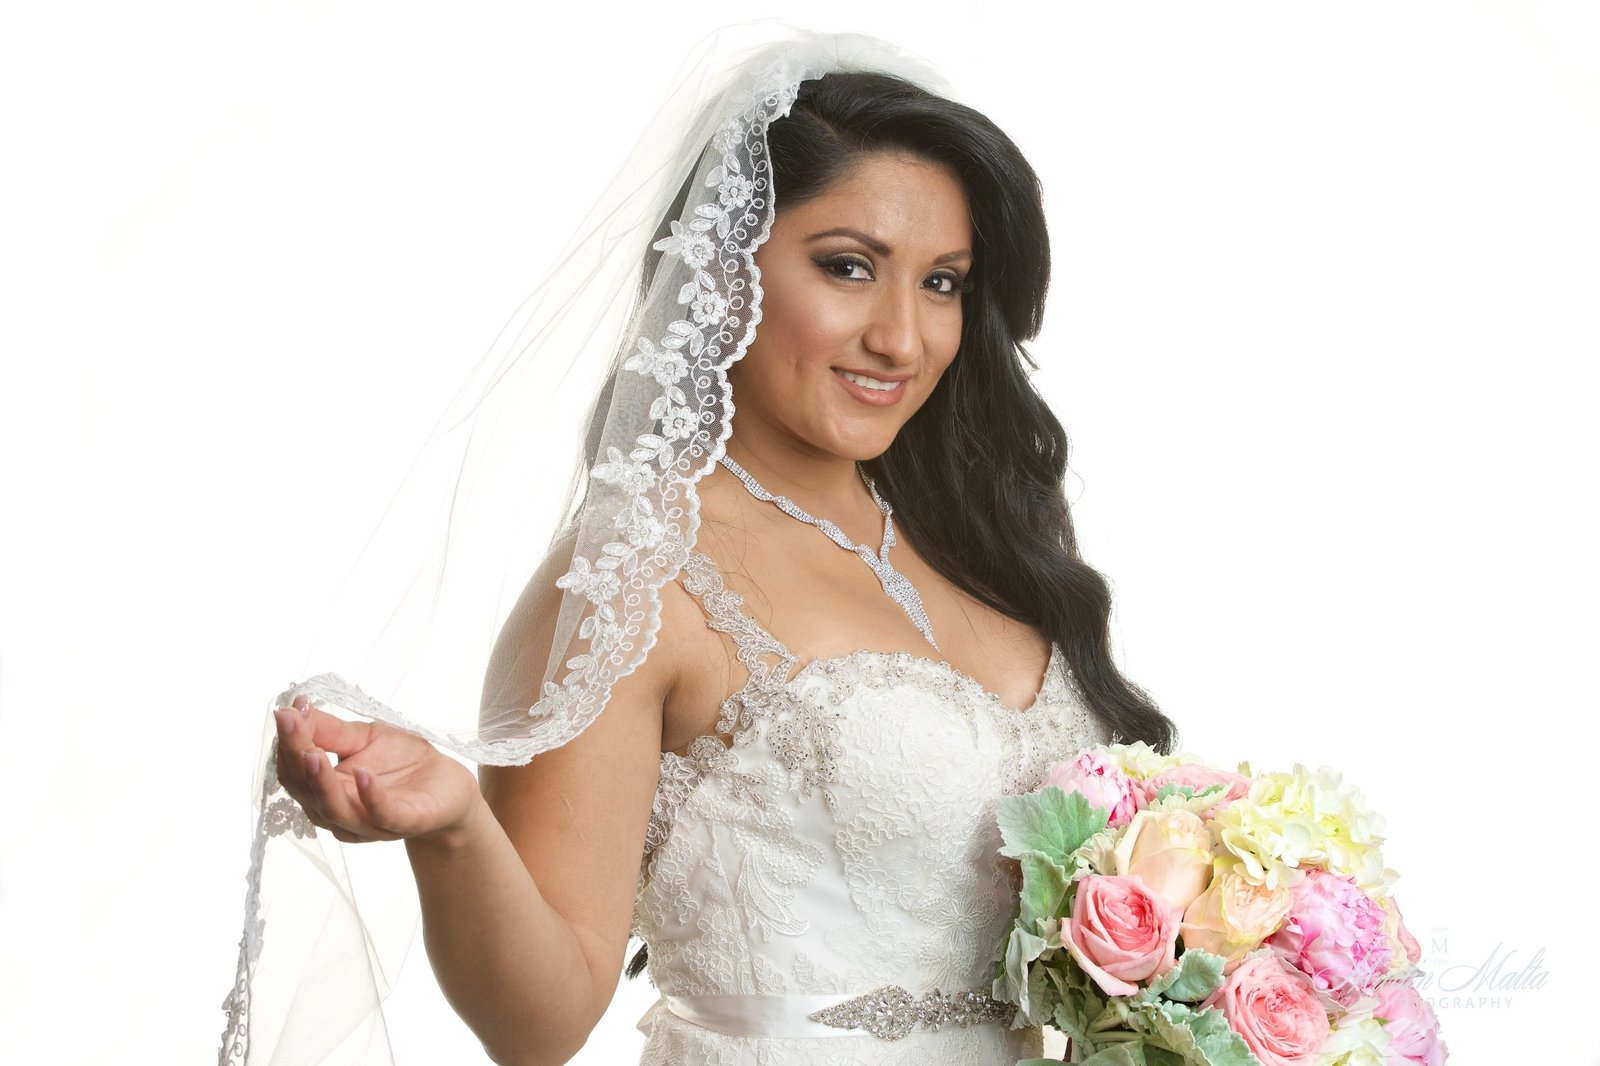 photography-photographer-wedding-quinceanera-xv-021